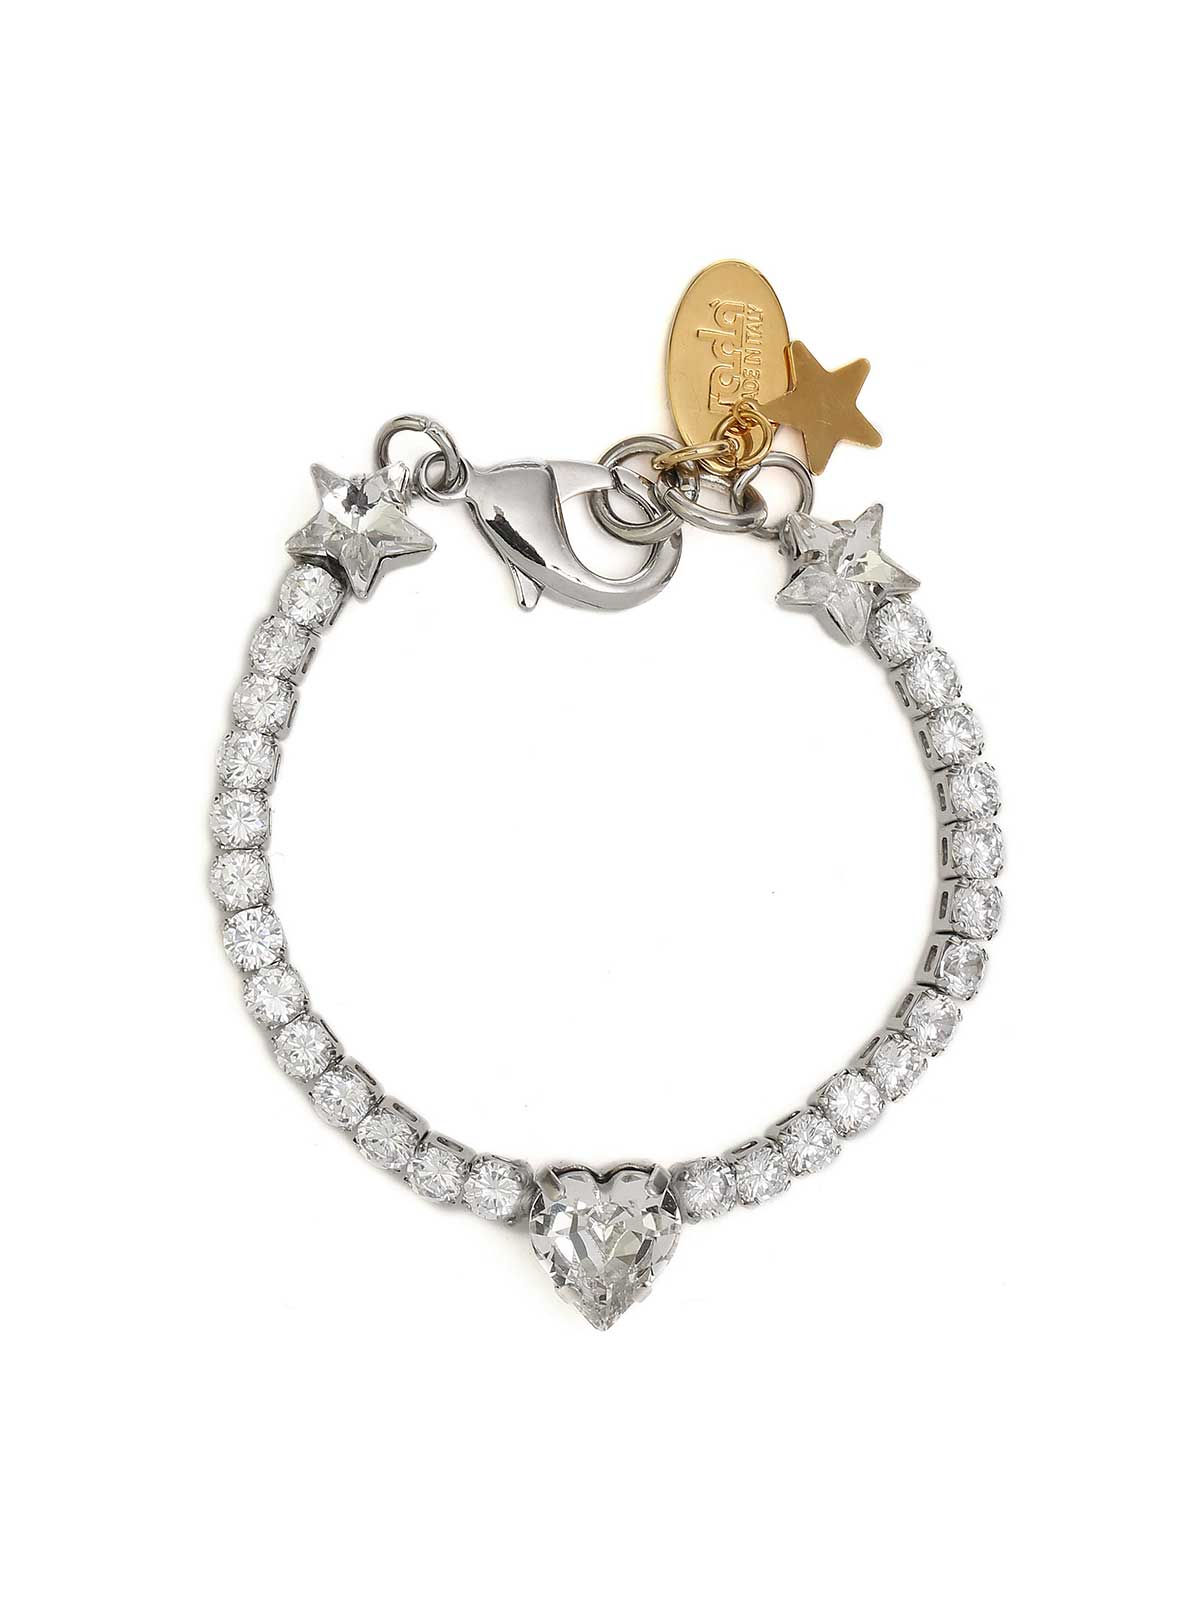 Brass bracelet with crystals and heart charm